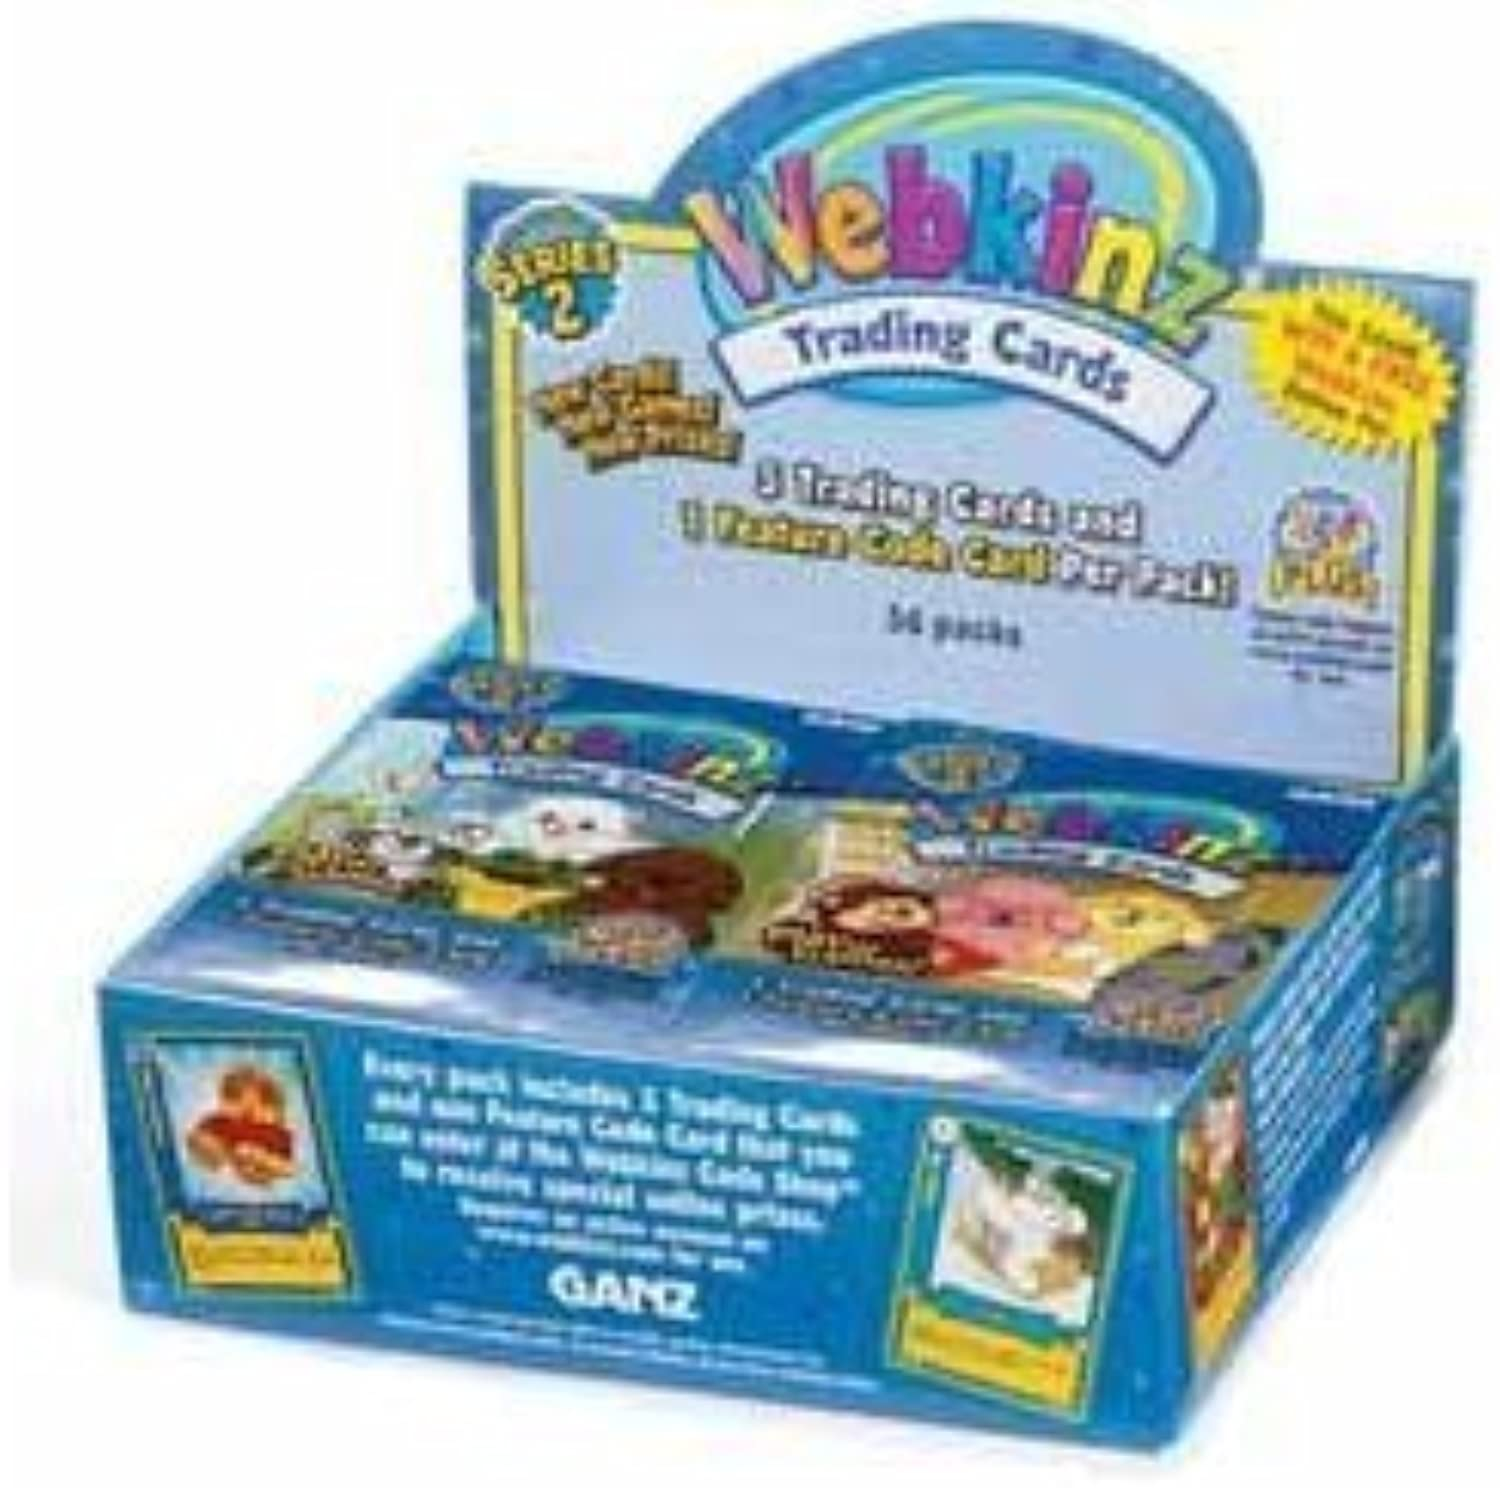 Webkinz Trading Cards Series 2 Sealed Box 36 Packs by Webkinz